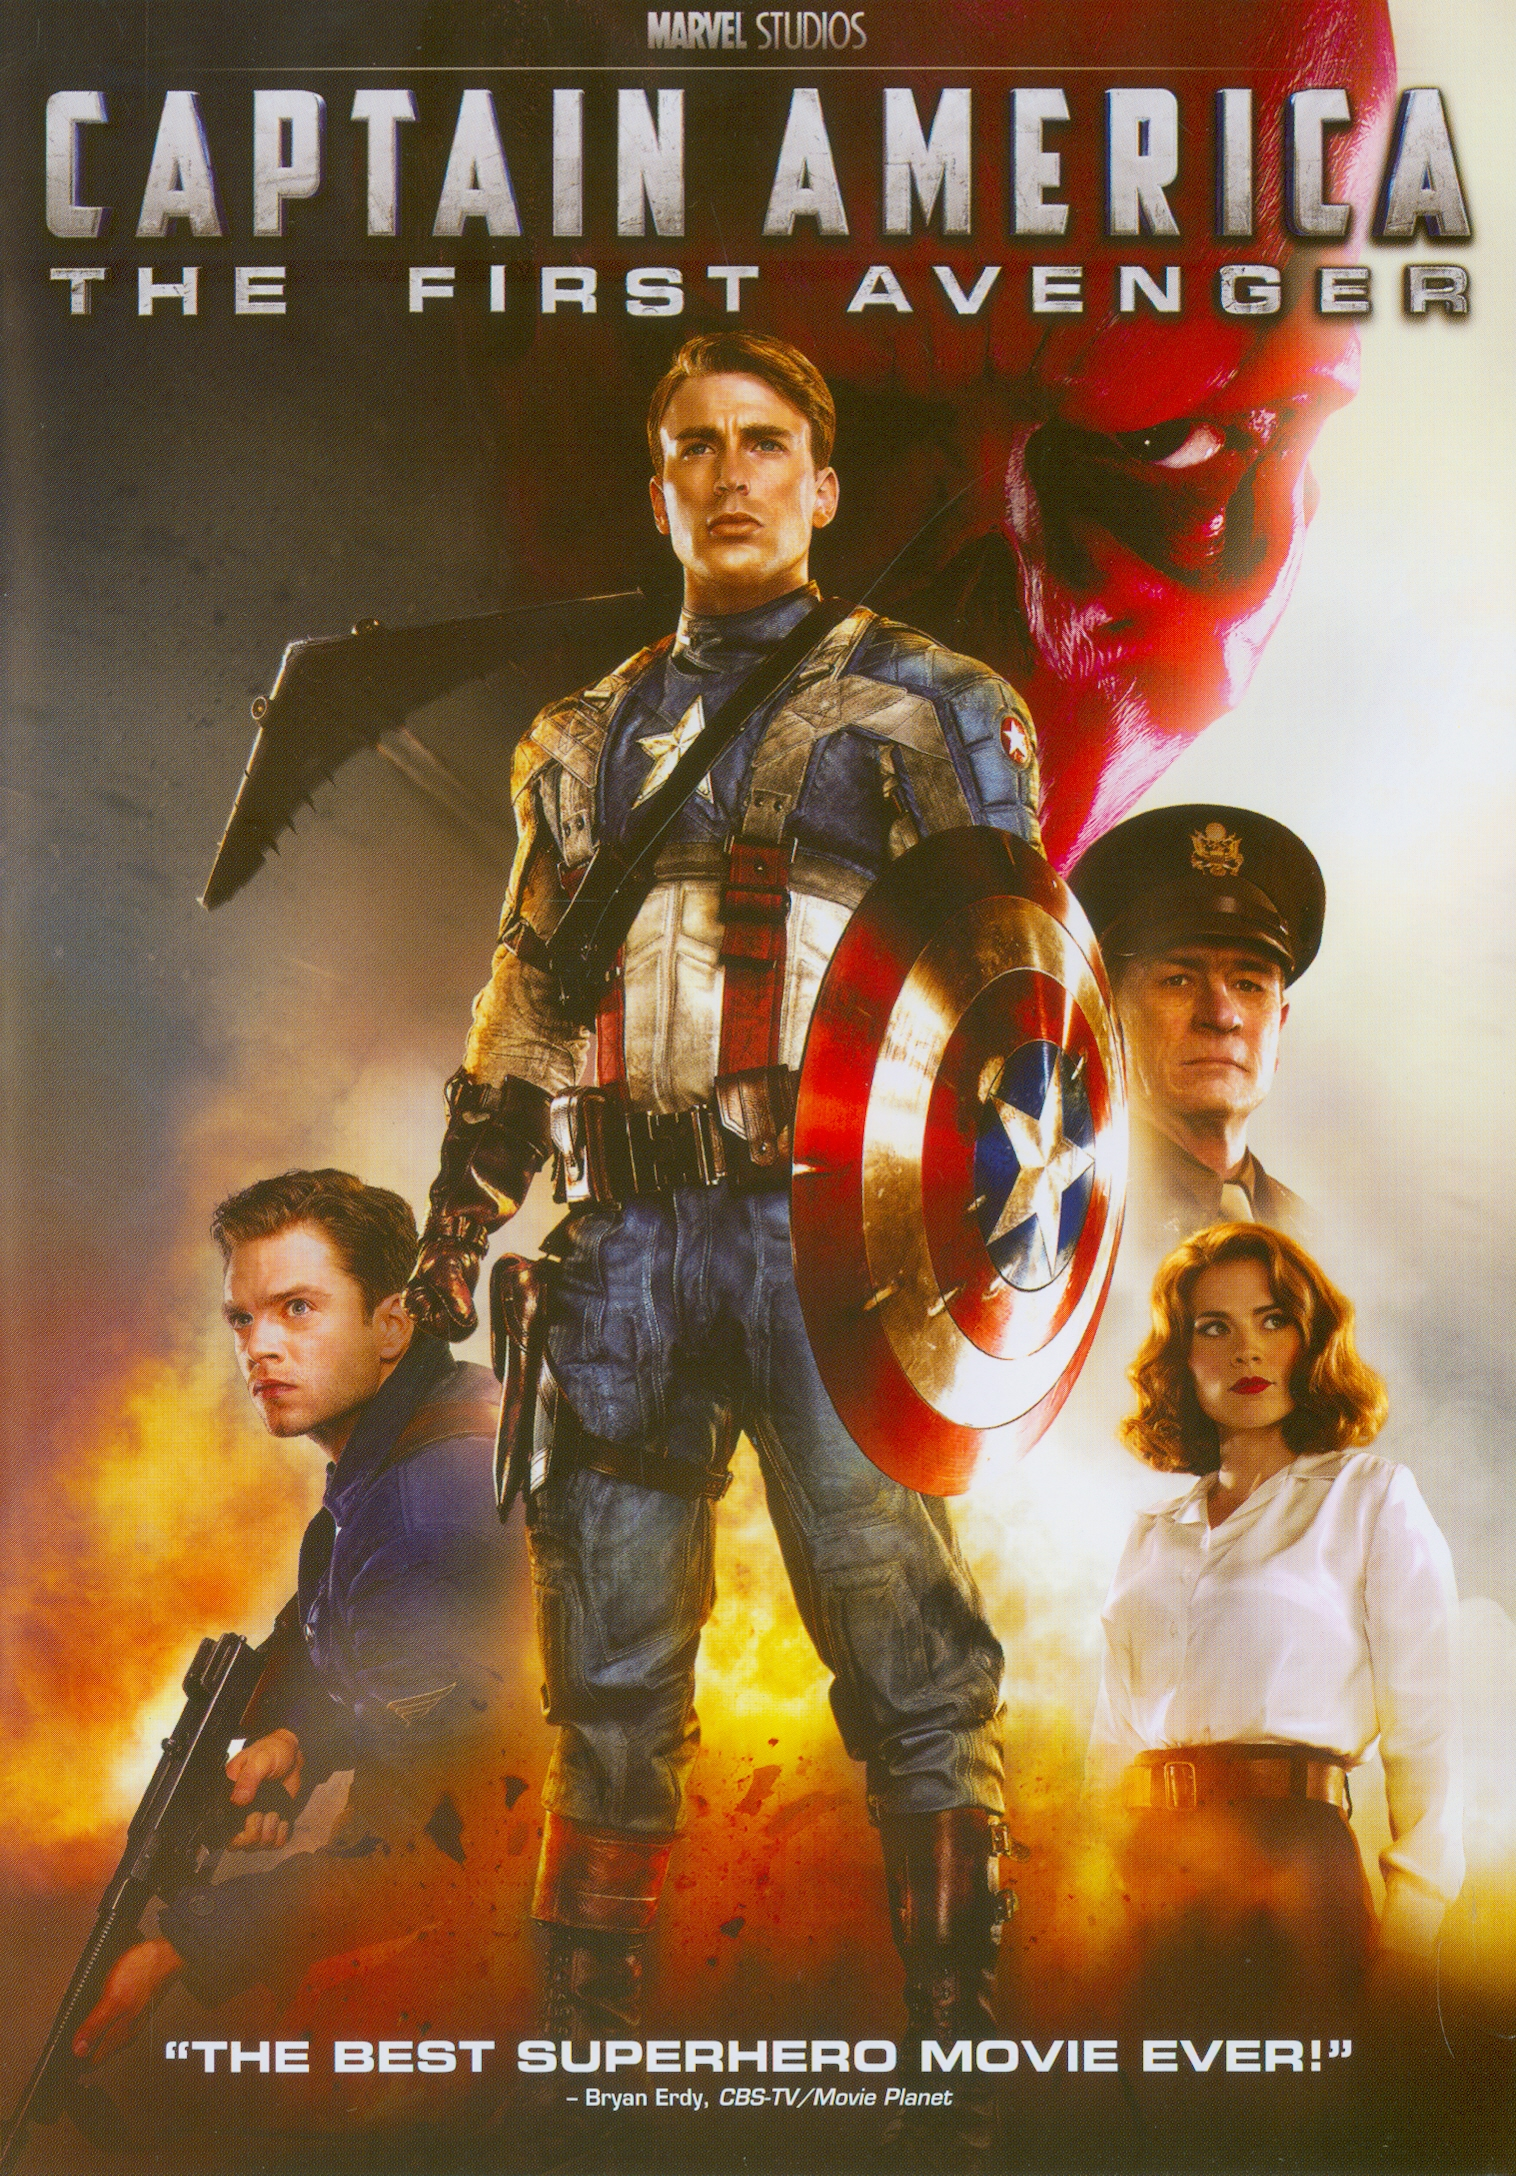 Captain America :the first avenger[videorecording] /Paramount Pictures and Marvel Entertainment present ; a Marvel Studios production ; a film by Joe Johnston ; produced by Kevin Feige ; screenplay by Christopher Markus & Stephen McFeely ; directed by Joe Johnston